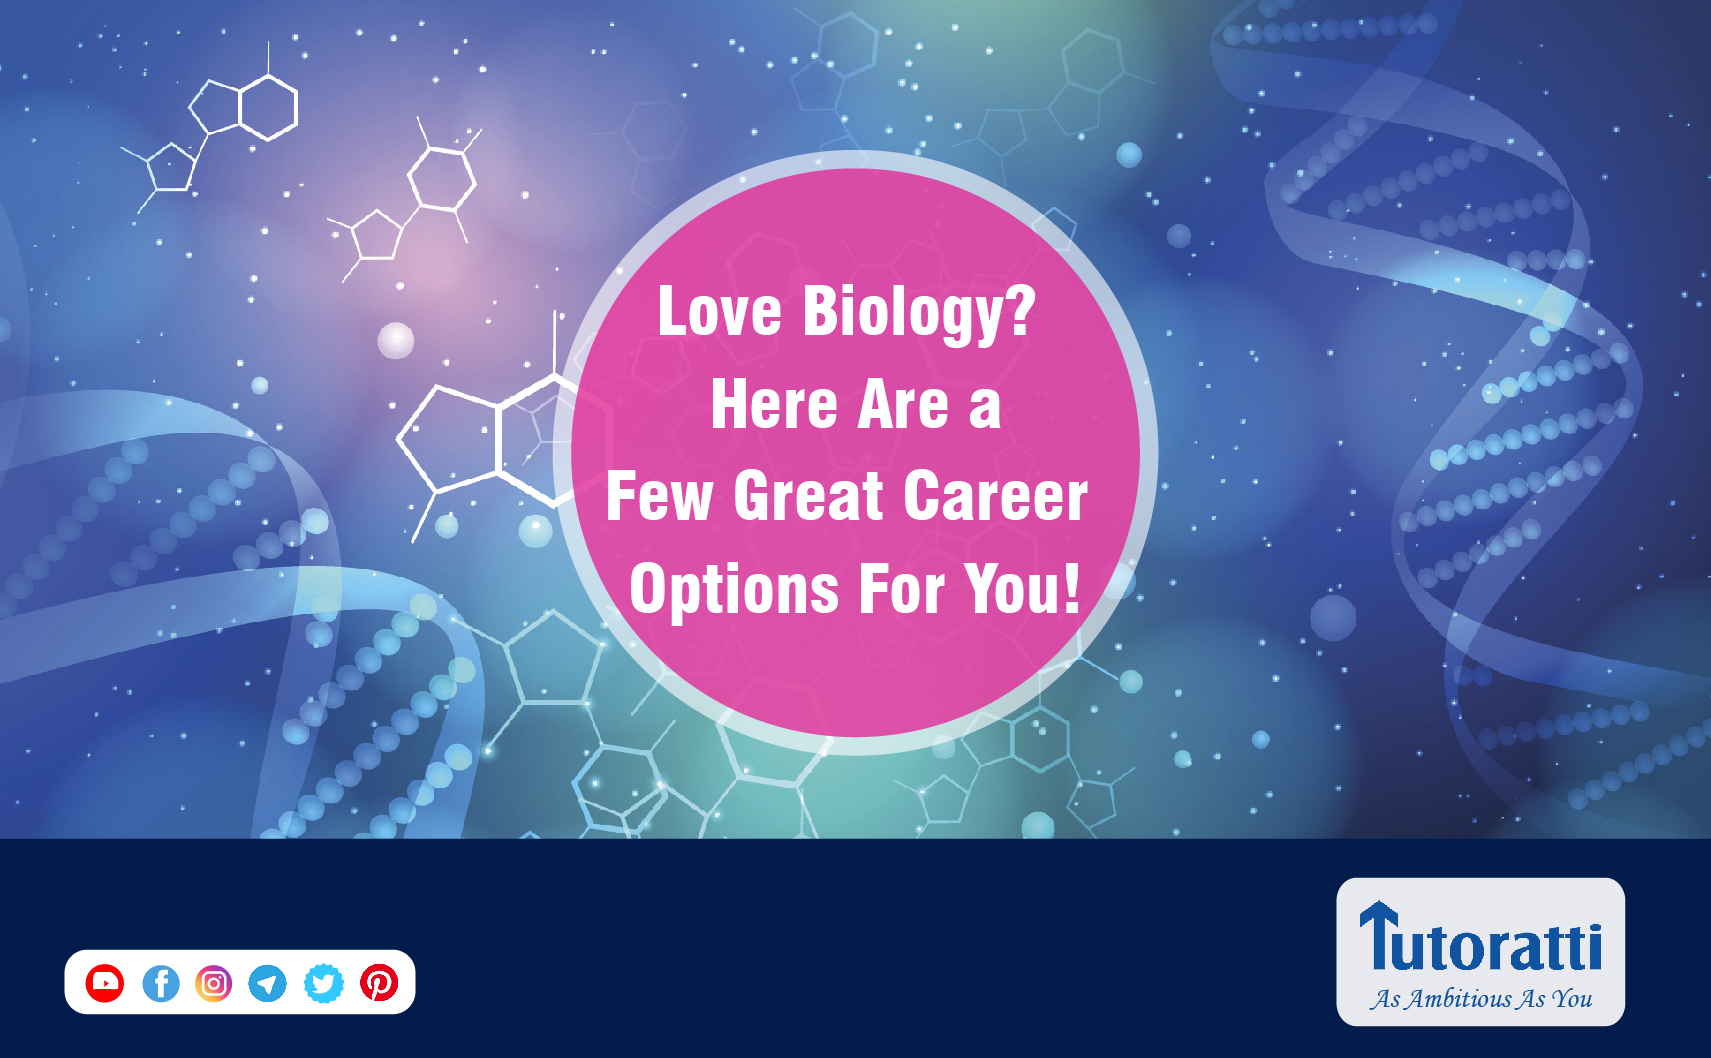 Love Biology? Here are a few great career options for you!